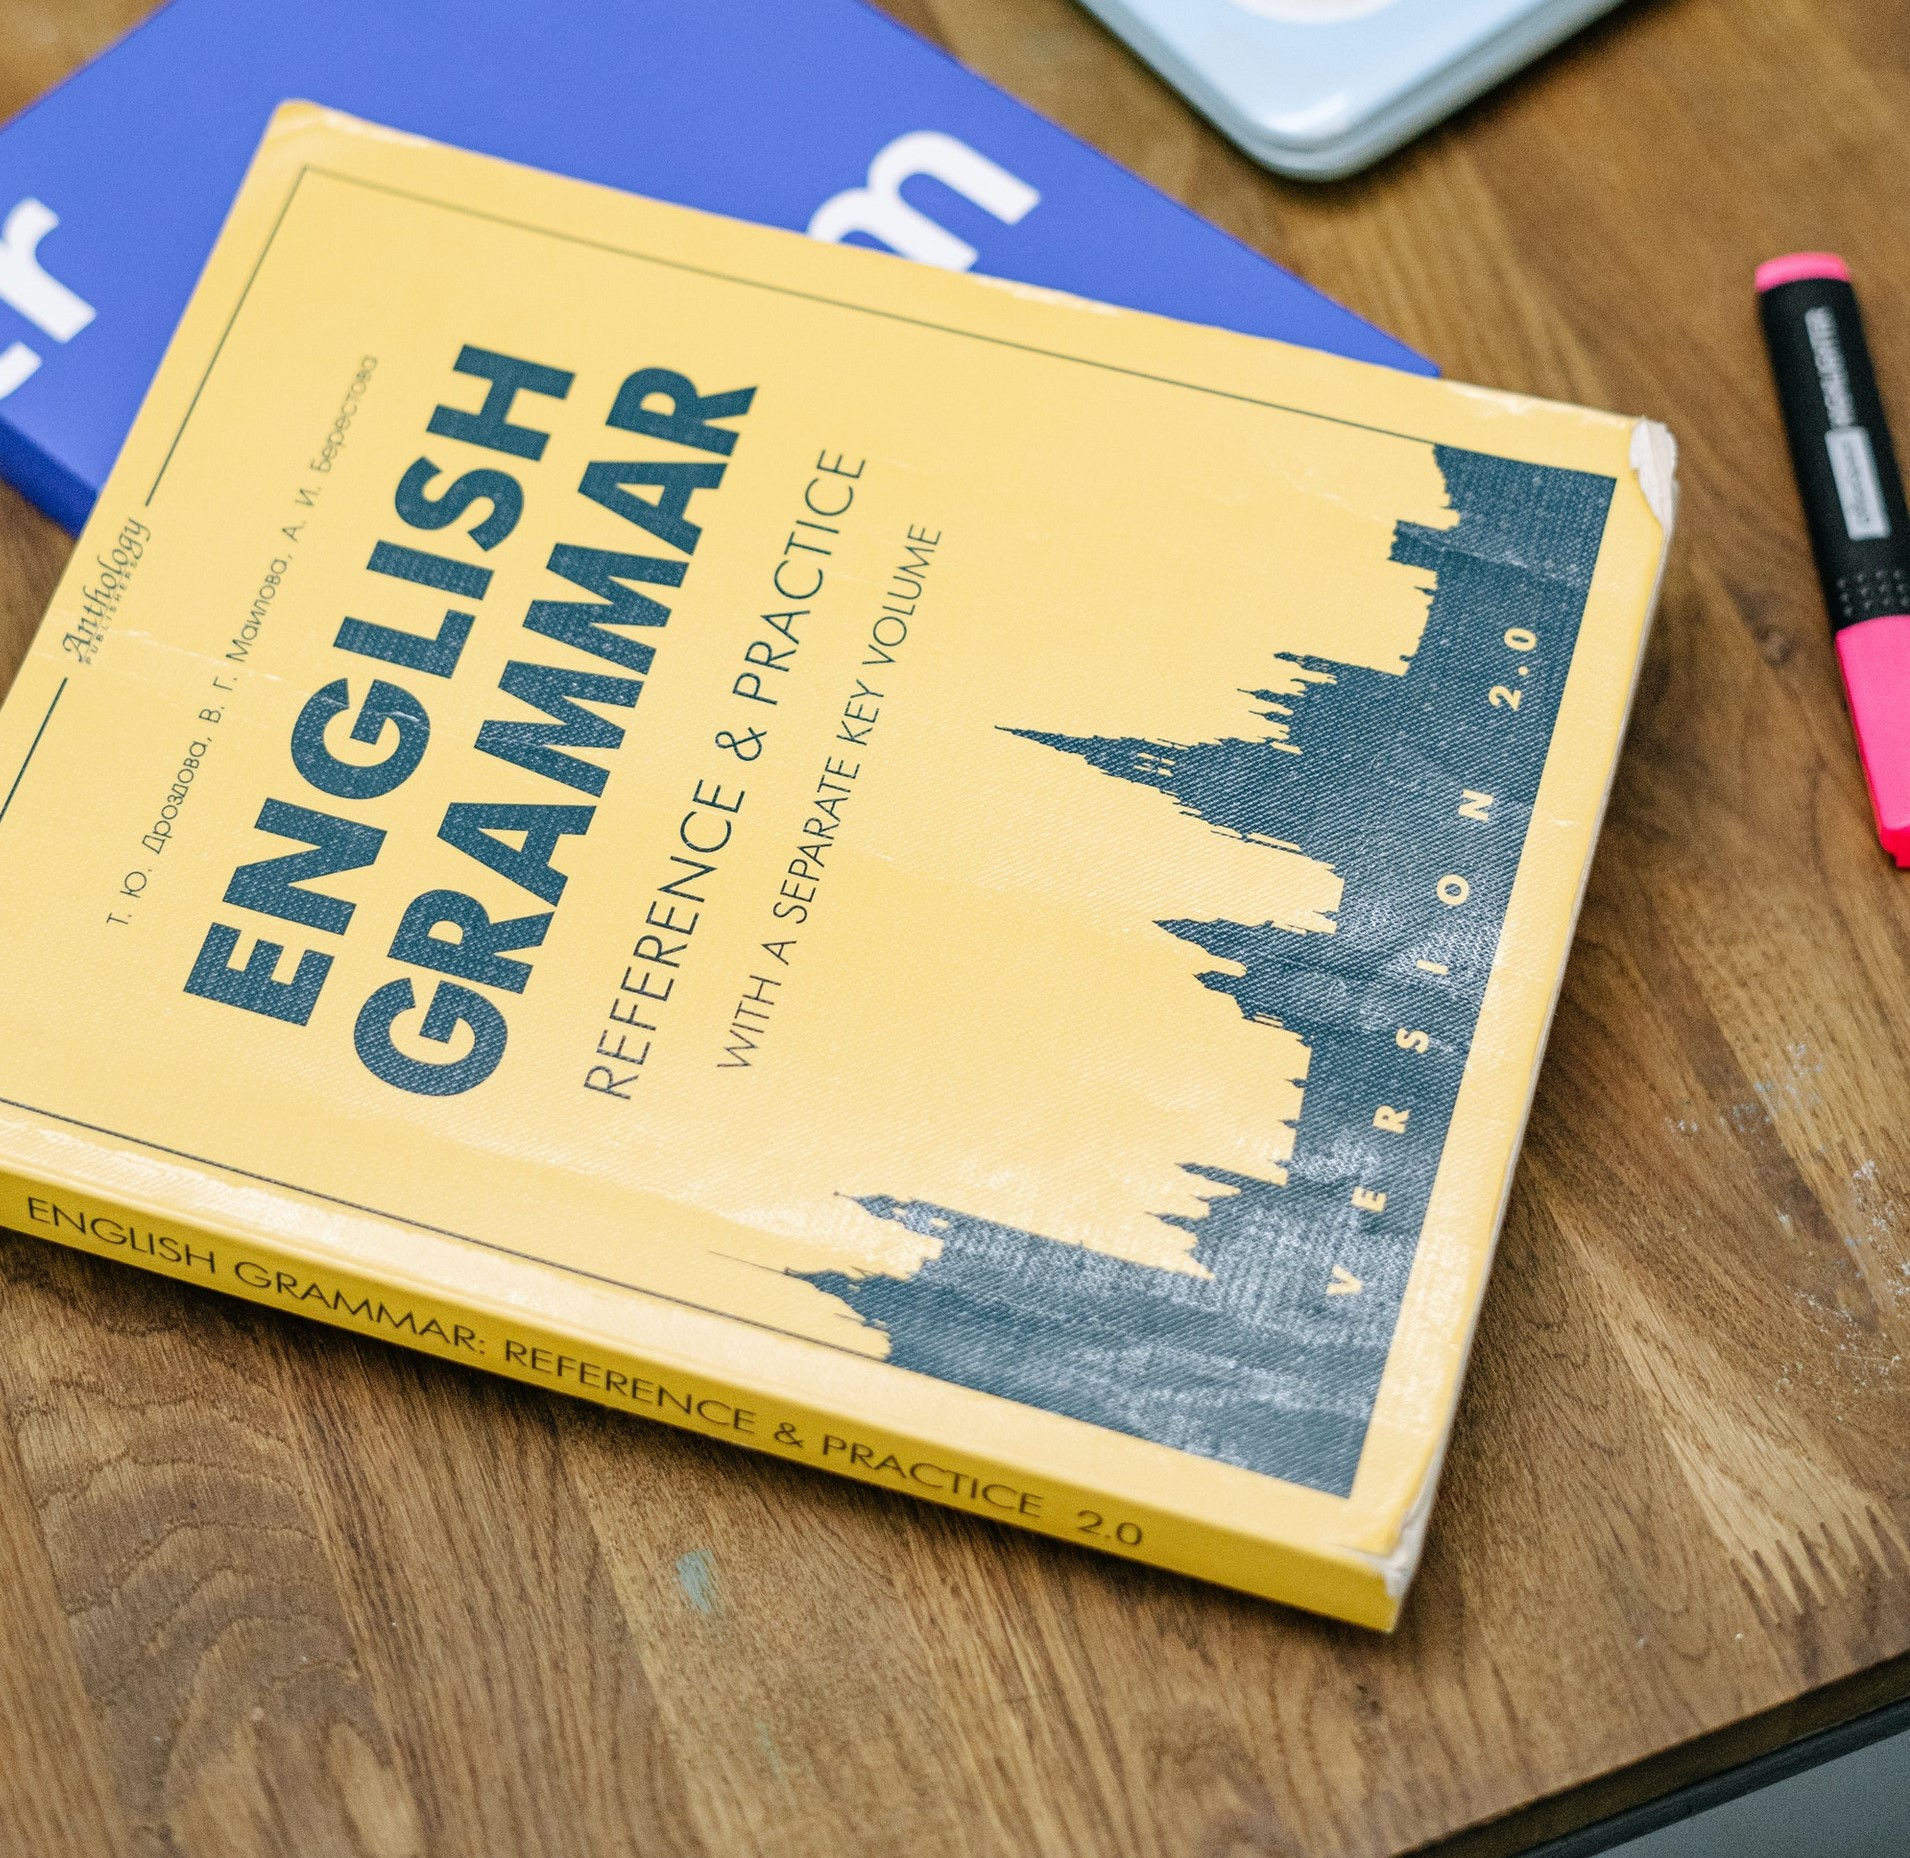 A book titled English Grammar on a table